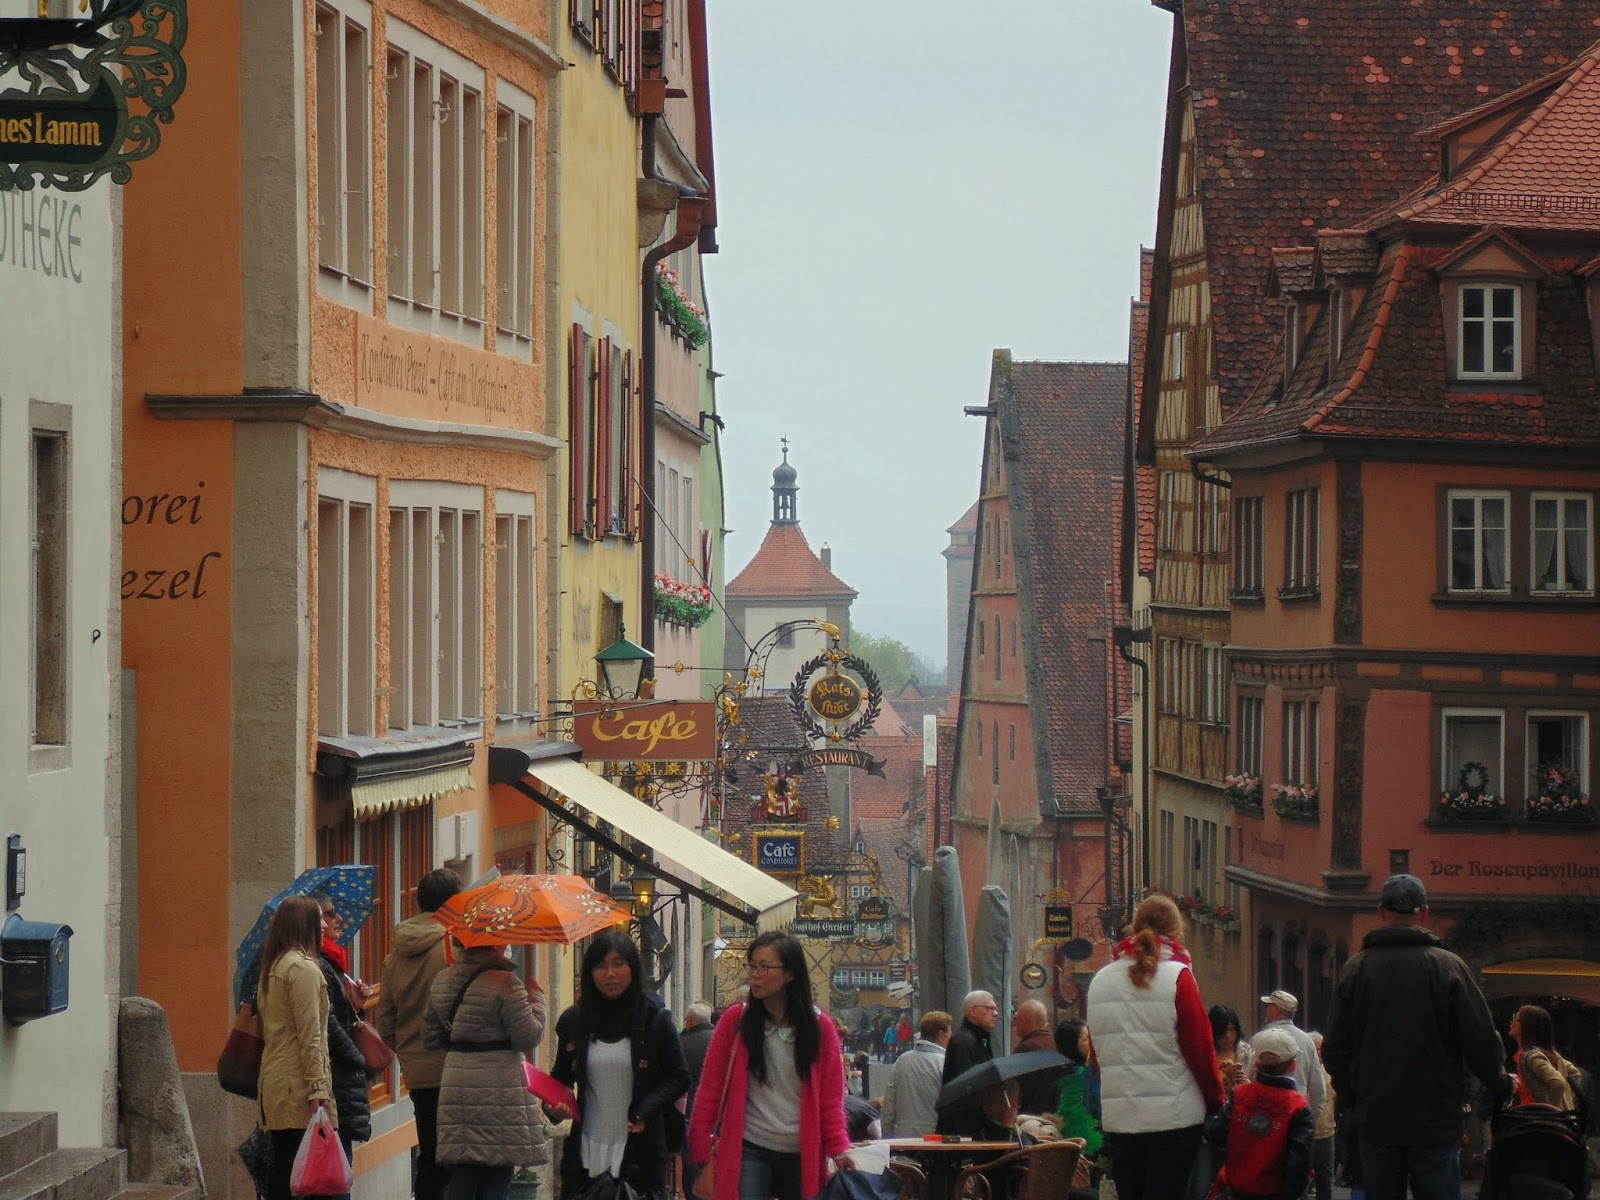 Rothenburg Ob Der Tauber Germany  City new picture : Trip to Rothenburg ob der Tauber, Germany part 1 | Life in ...